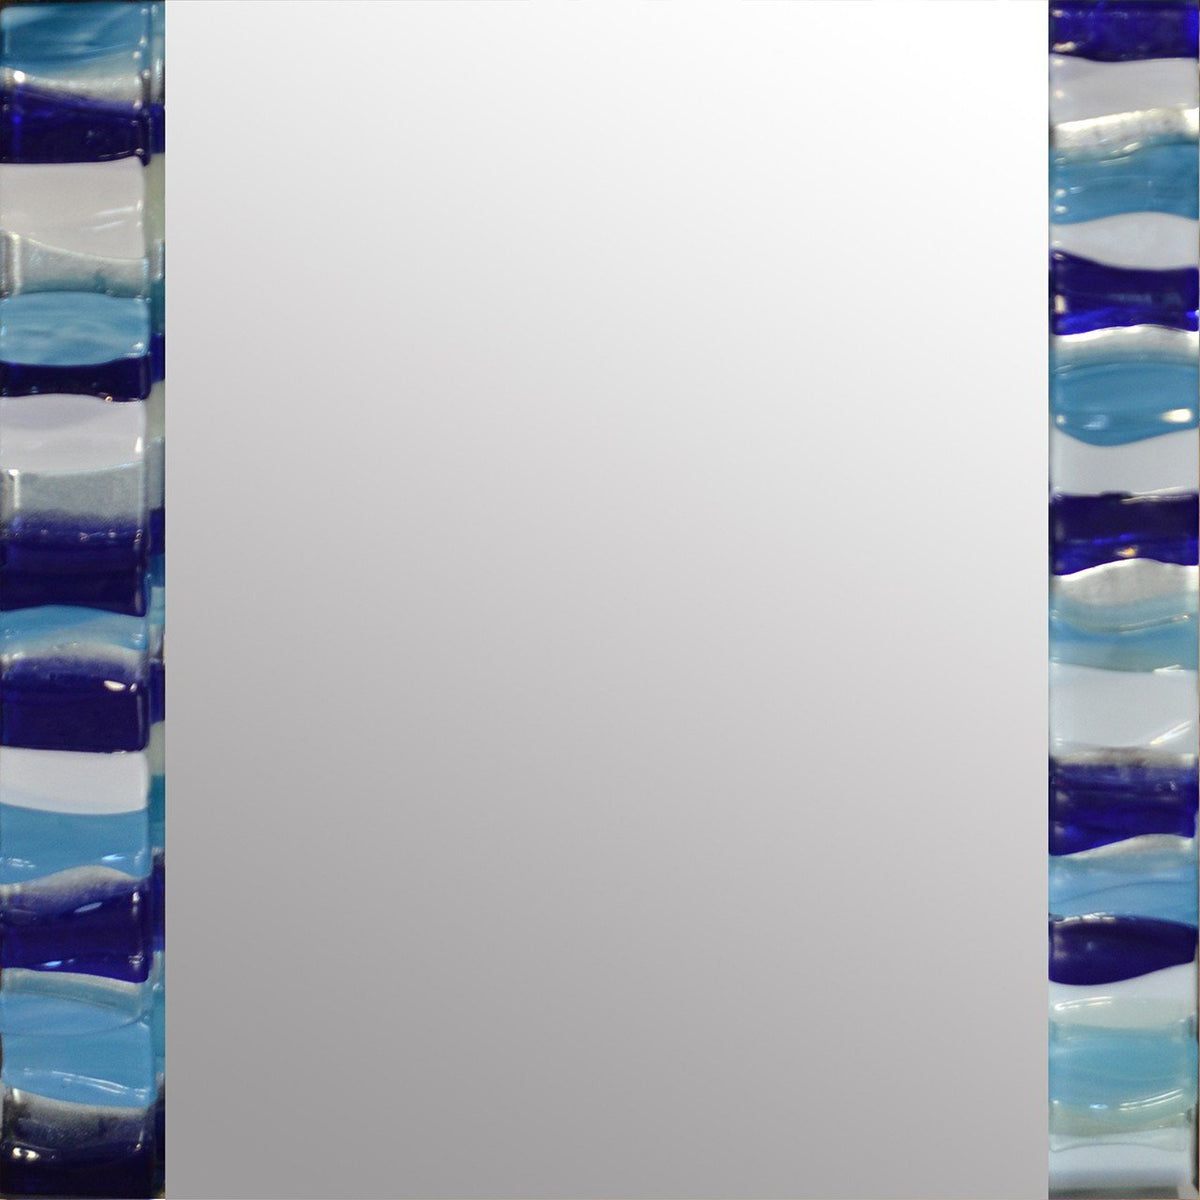 Aqua Ripple Square Mirror By Spires Studio - Mail Order Art